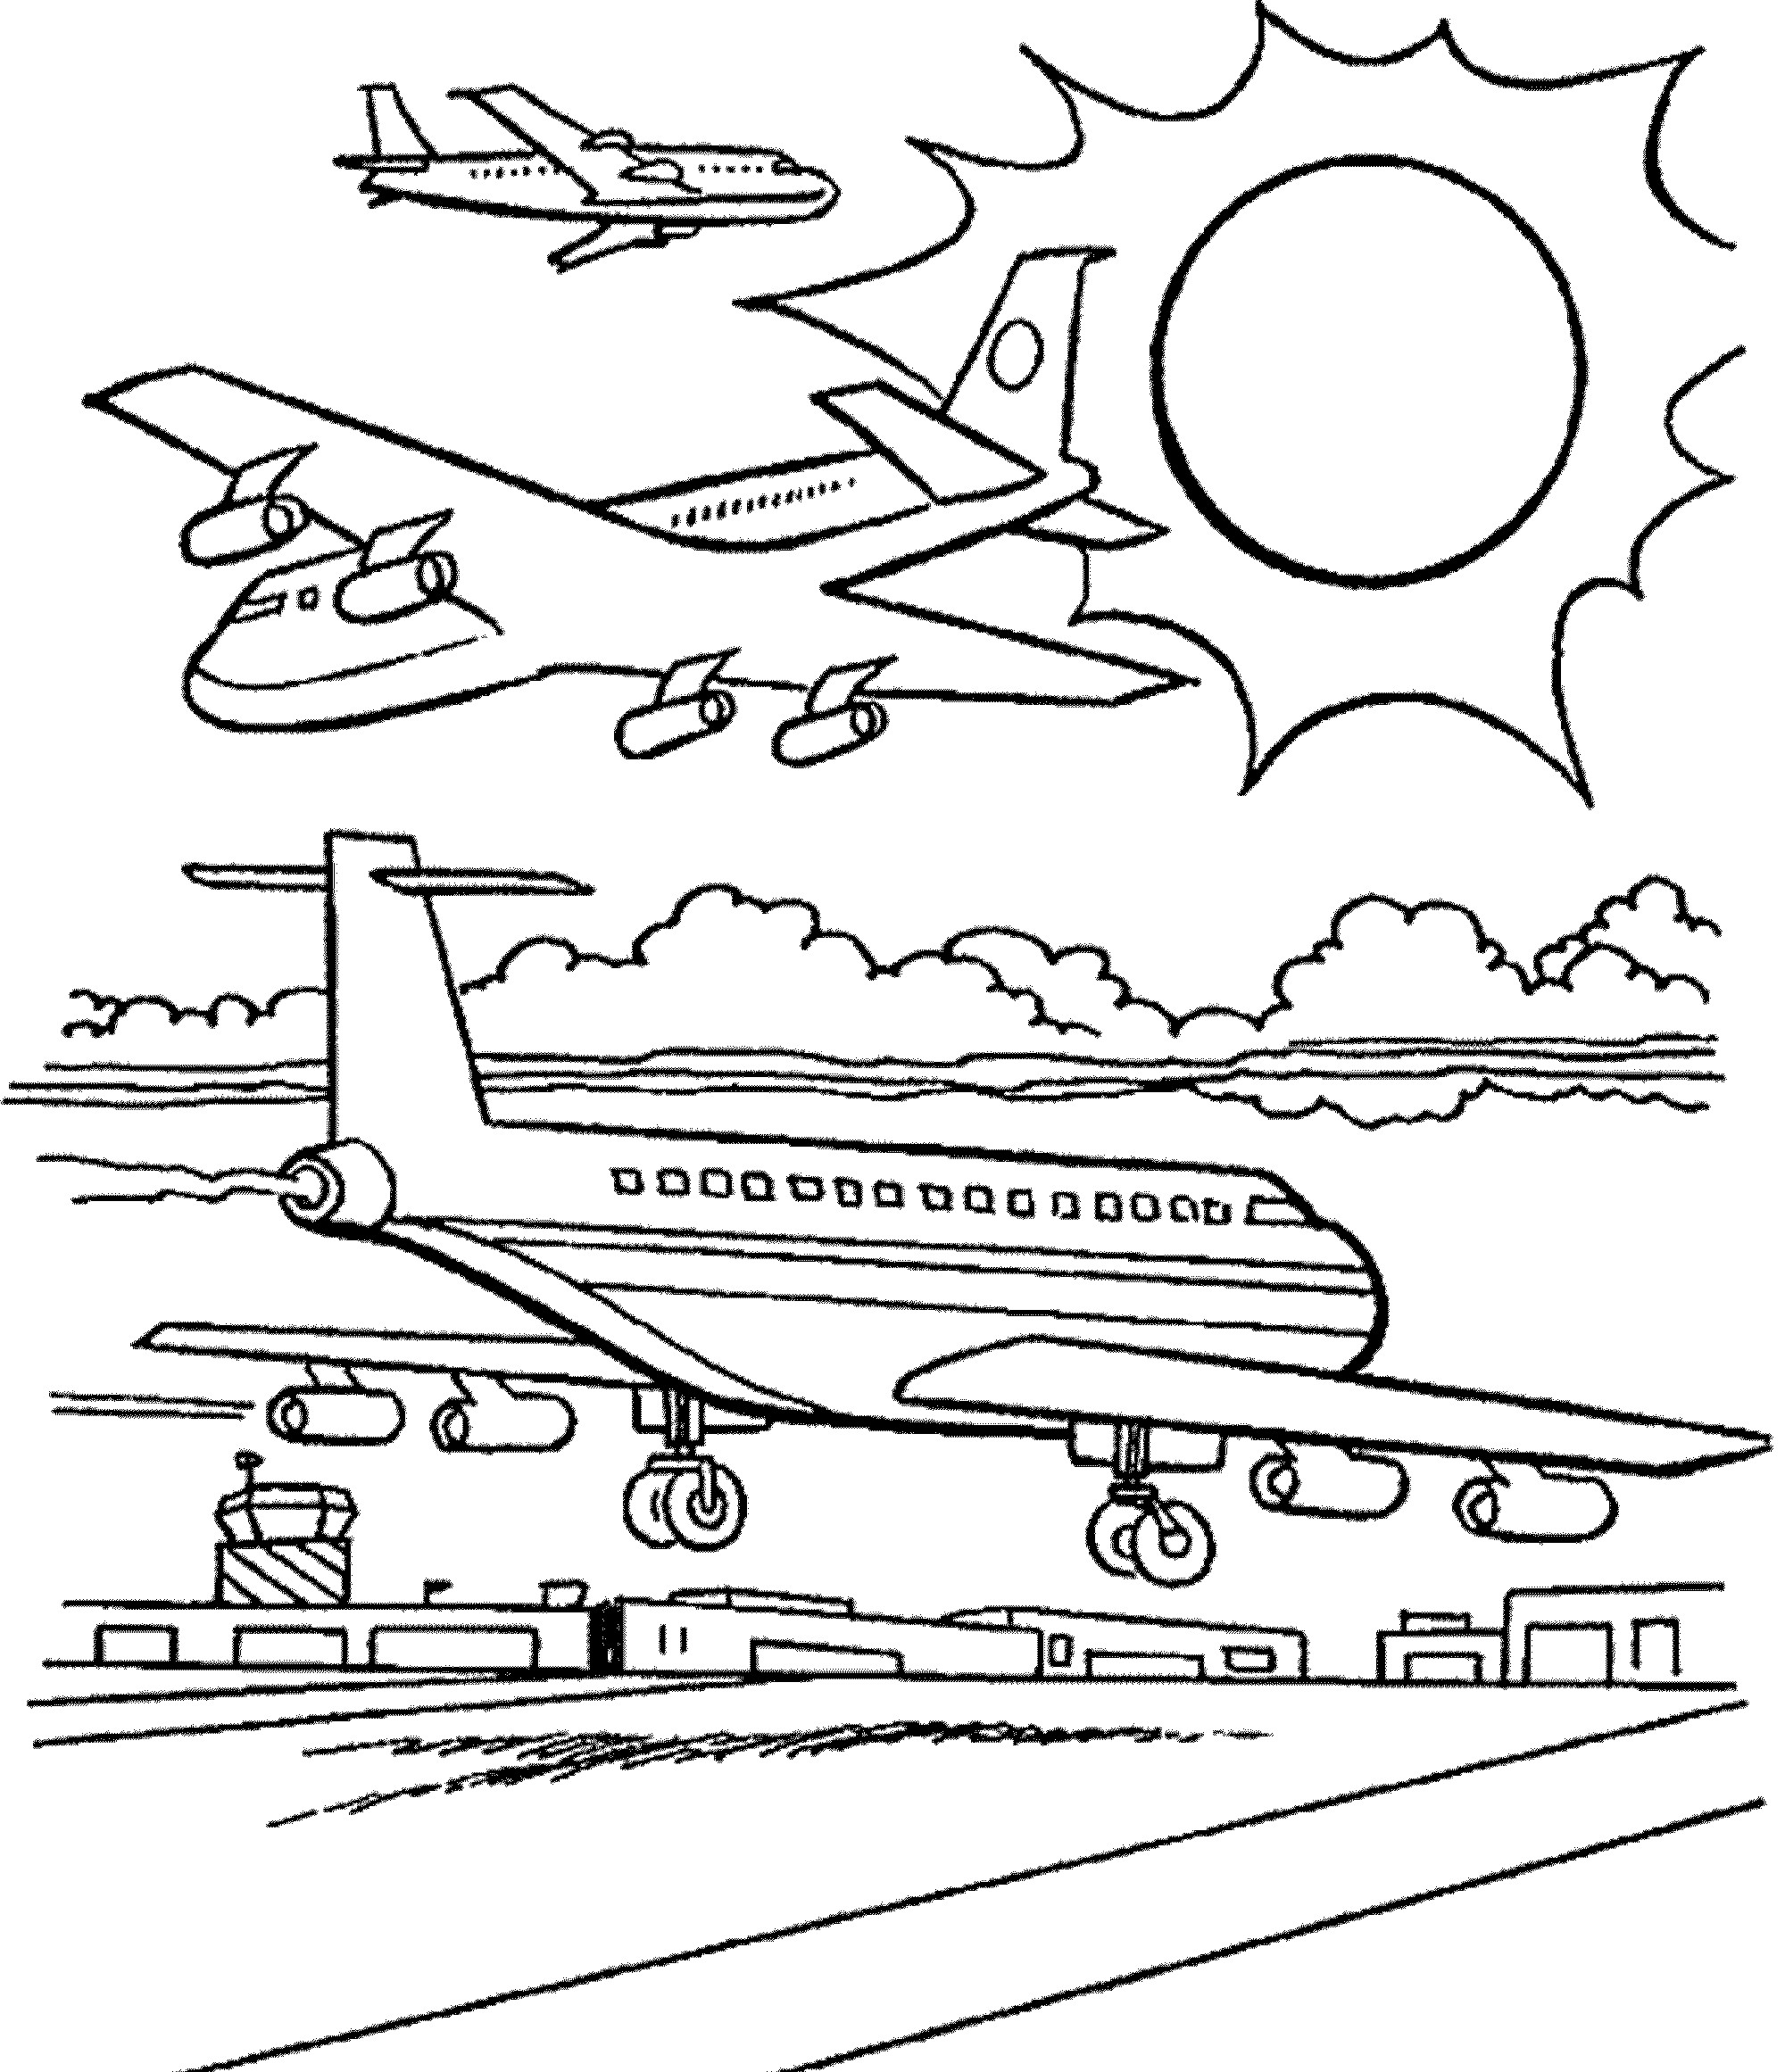 Airplane Coloring Pages For Adults  airplane coloring pages for adults